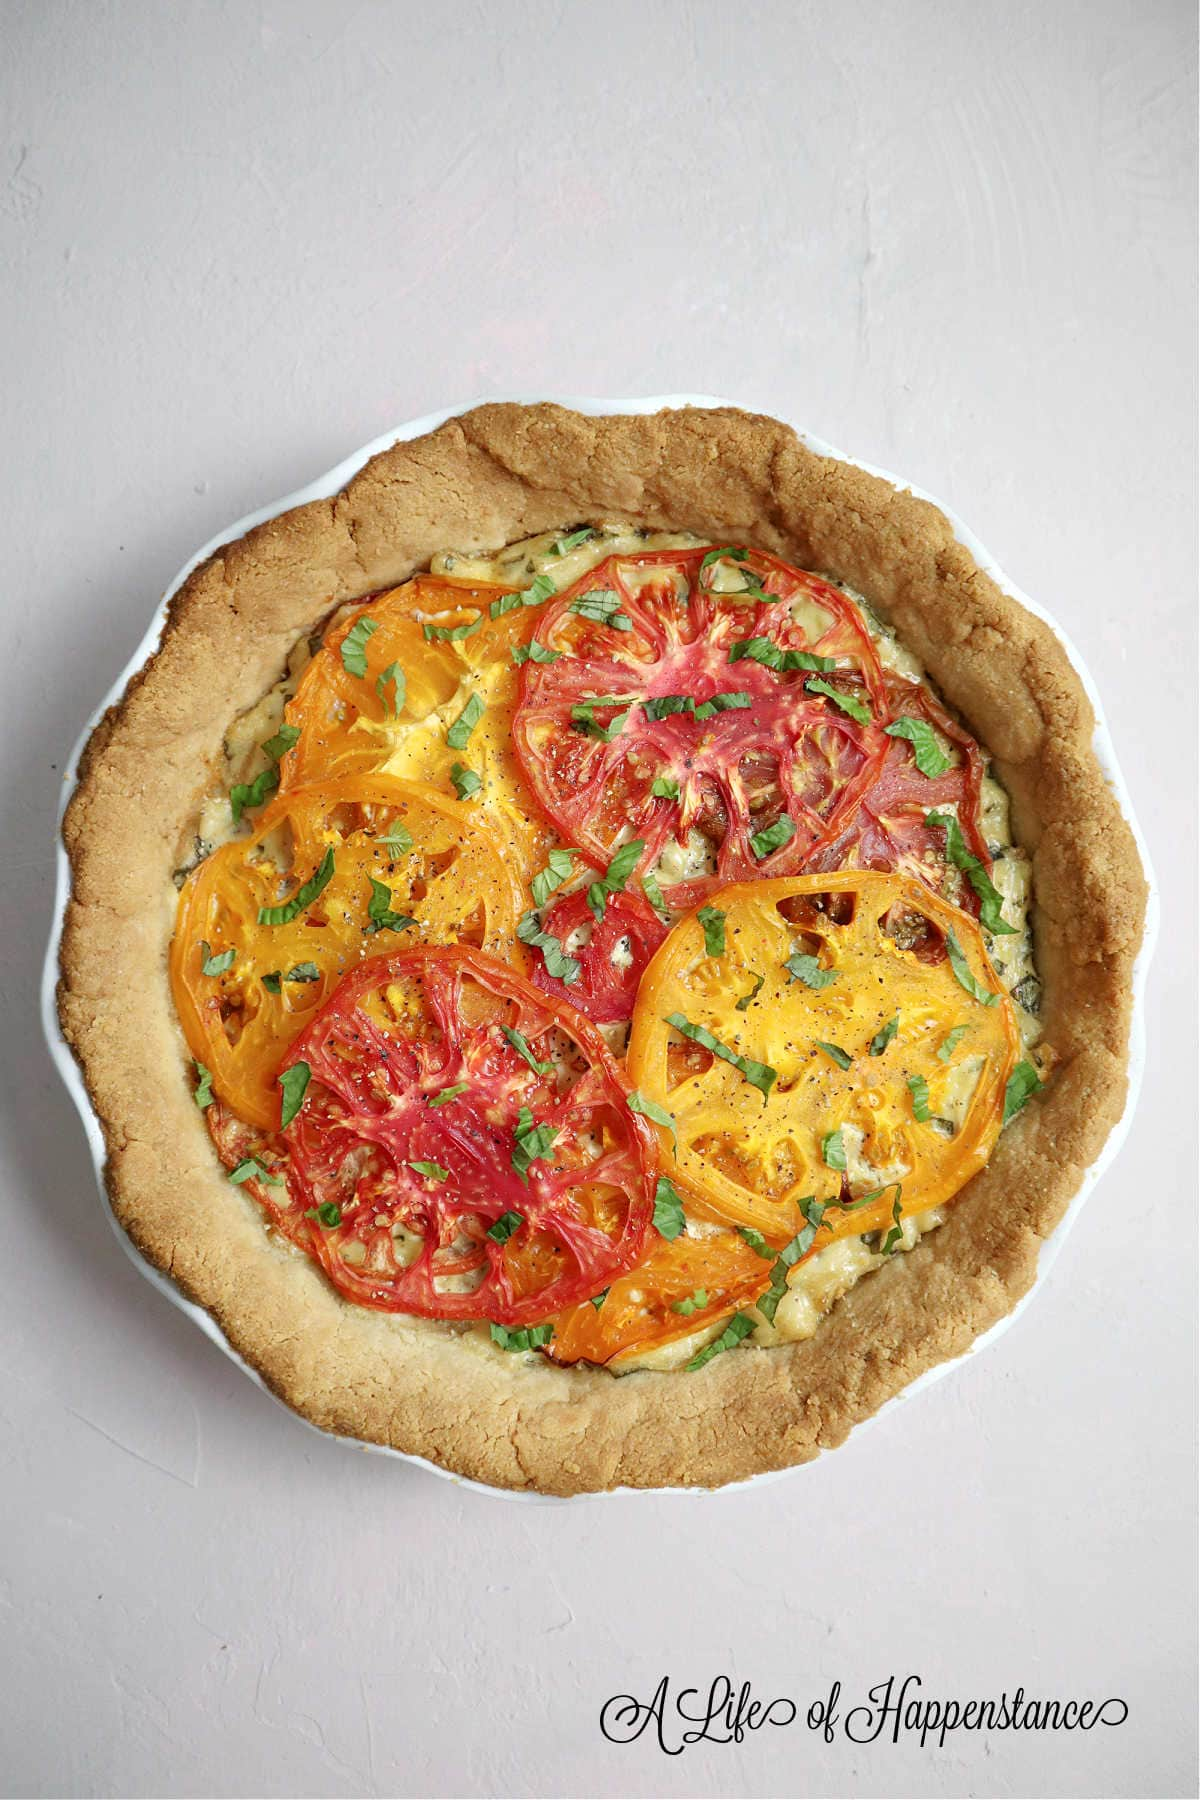 The cooked heirloom tomato pie on a light pink table.